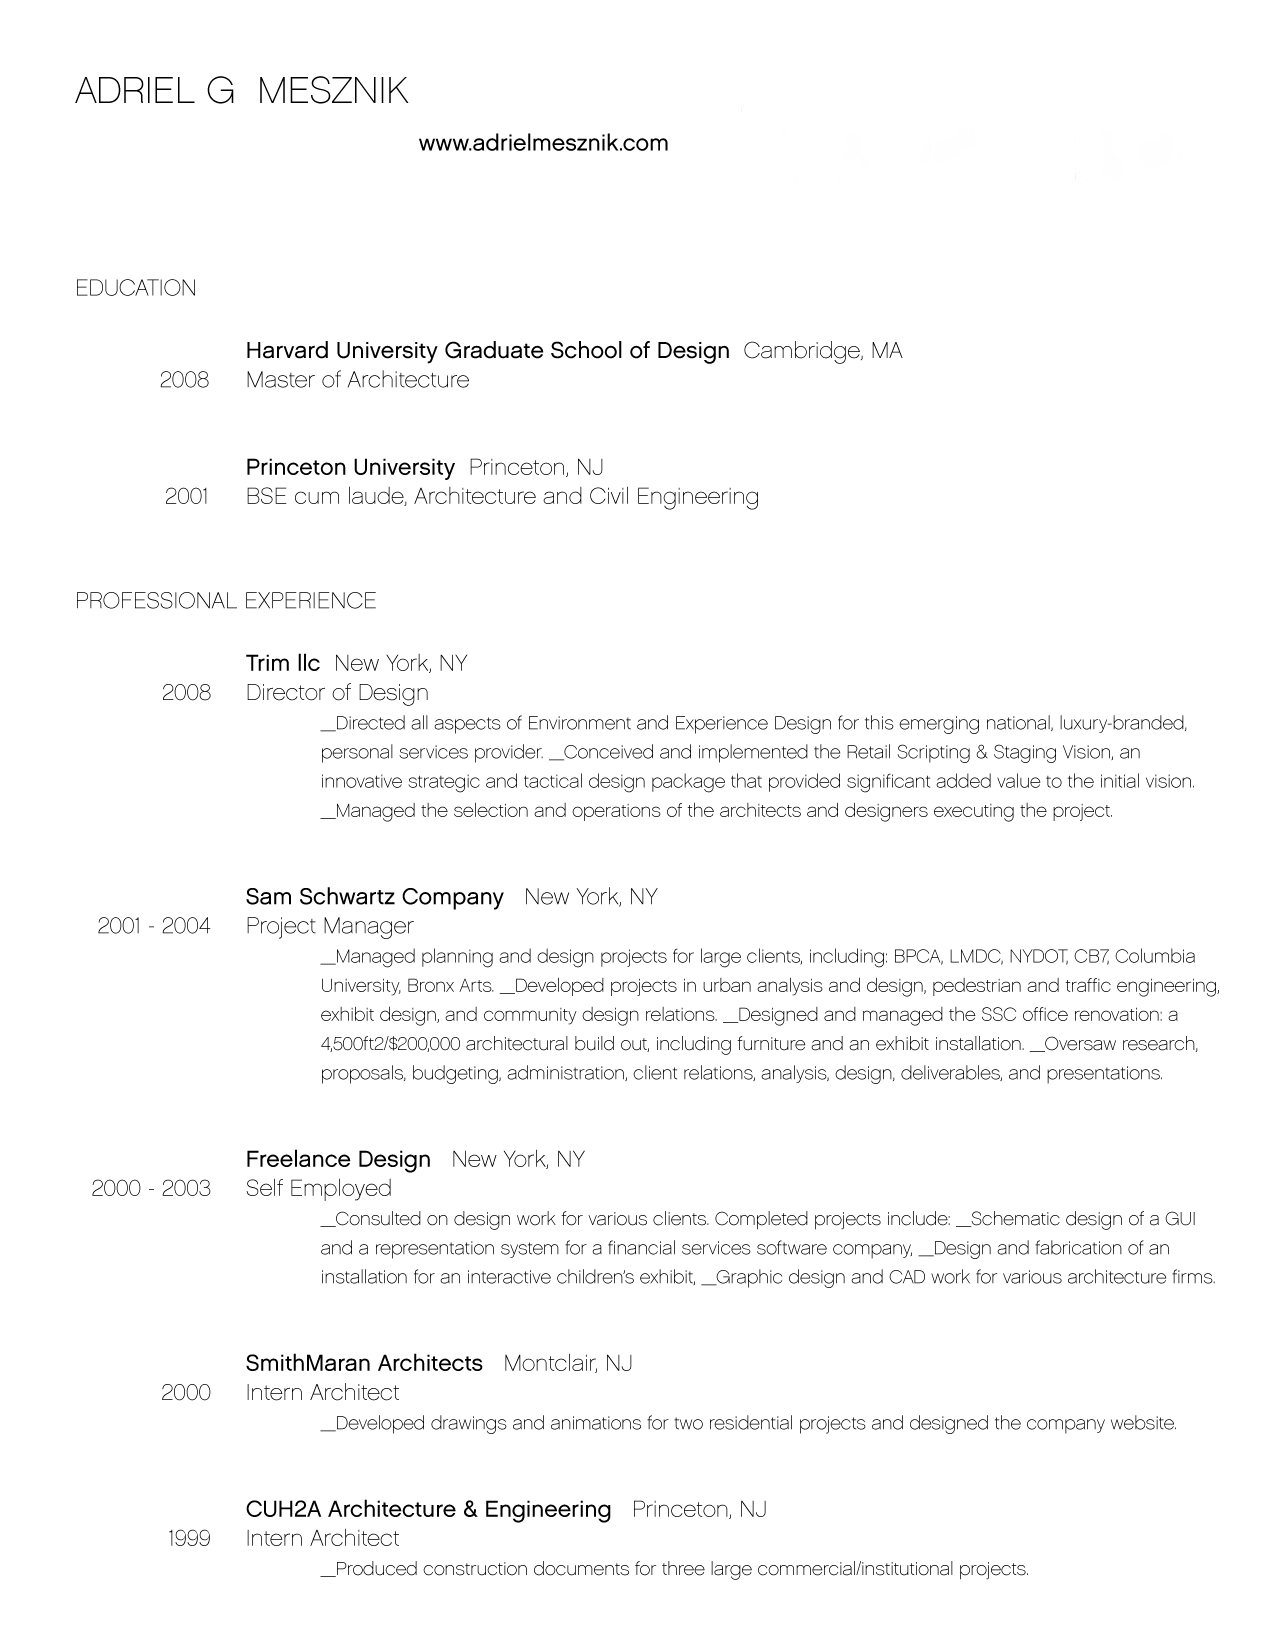 Graduate School Resume Jobresumeweb Harvard Resume Template 2015